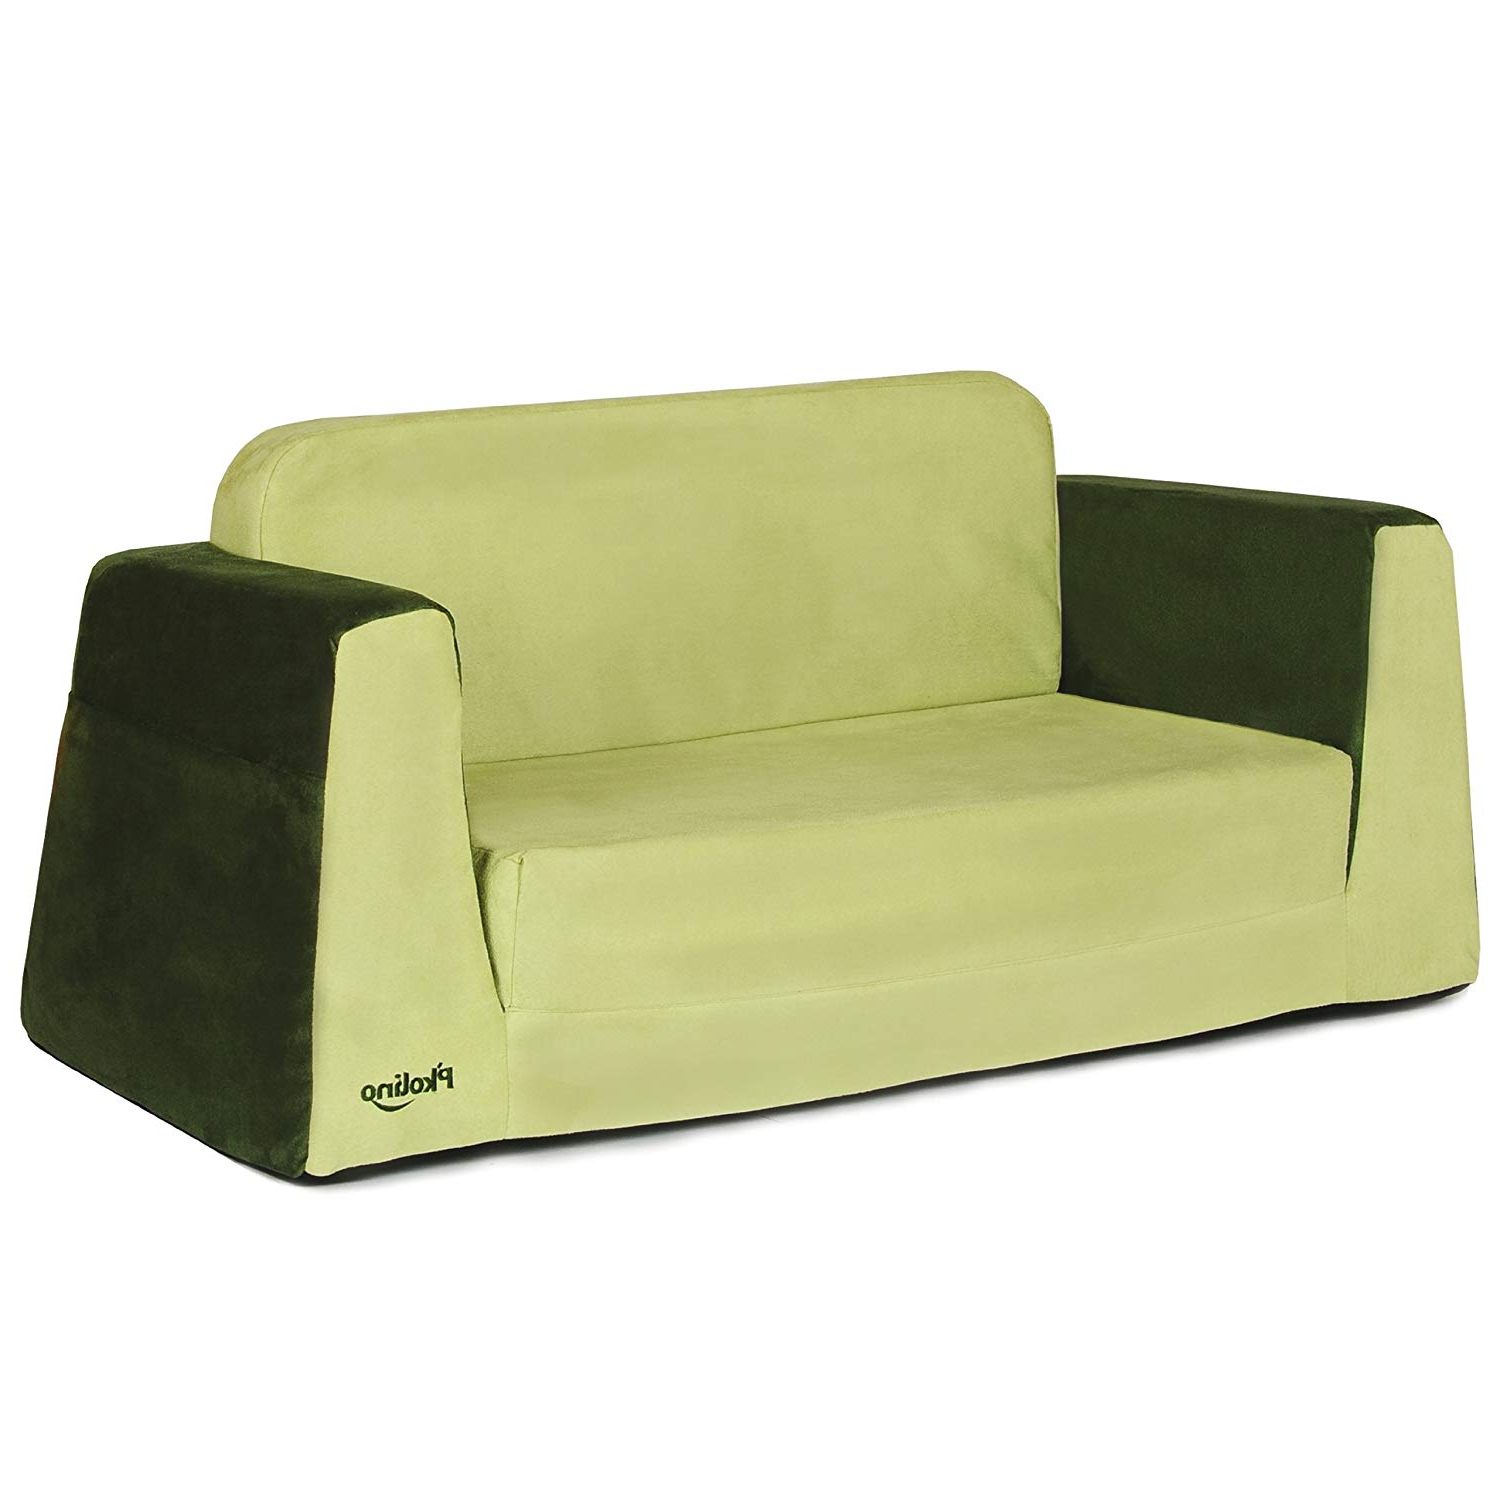 Bedroom : Sofa For Children's Room Kids Foldable Couch Childrens Inside Recent Childrens Sofa Bed Chairs (View 18 of 20)